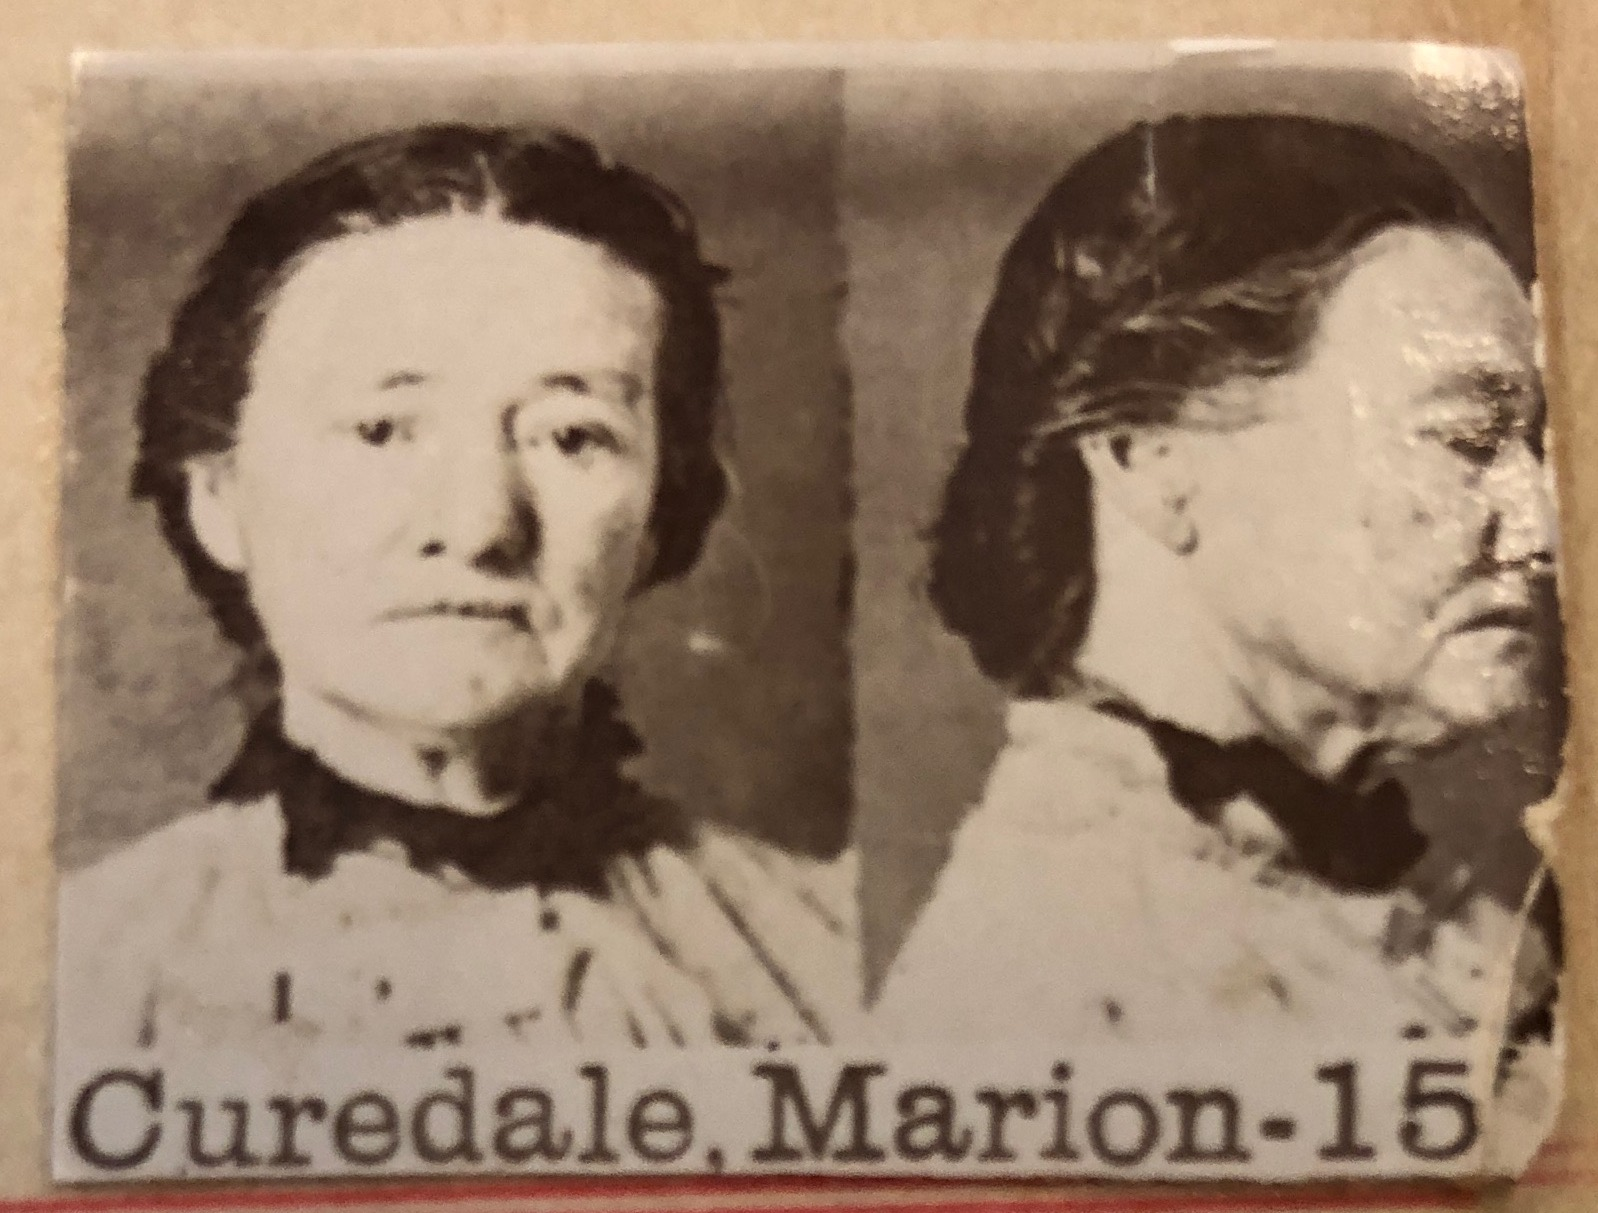 Marion Curedale's mugshot, Courtesy of the State Records Office WA